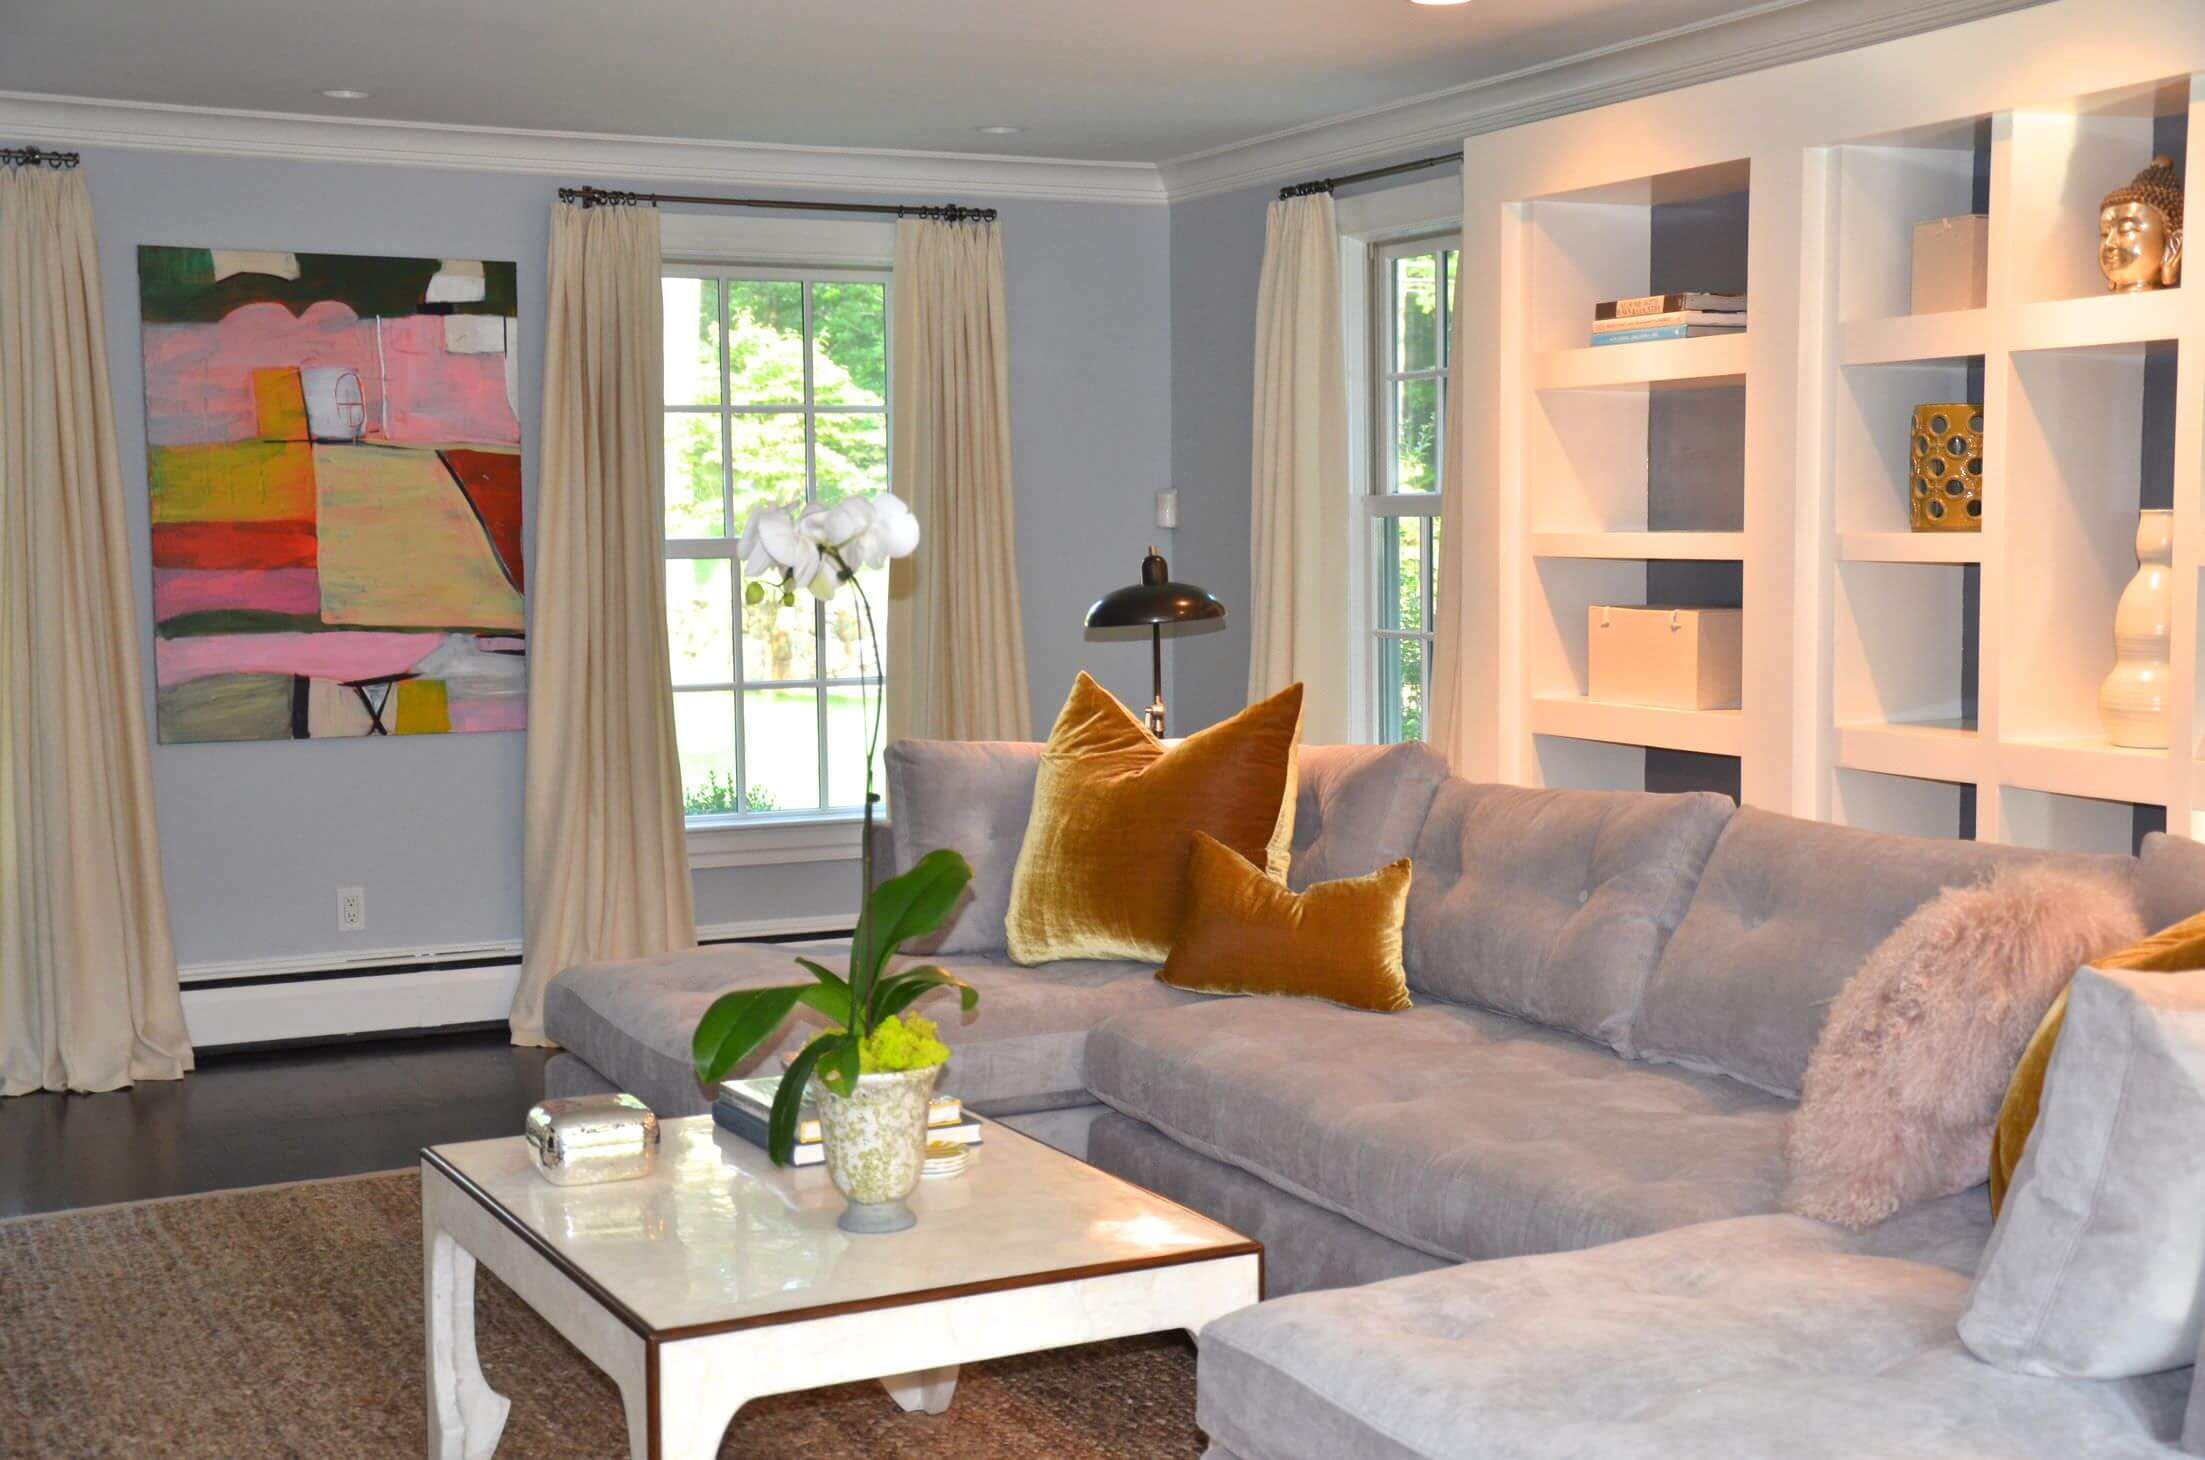 This living room features a gray sofa with white bookshelves at the back. The room is surrounded by gray walls.